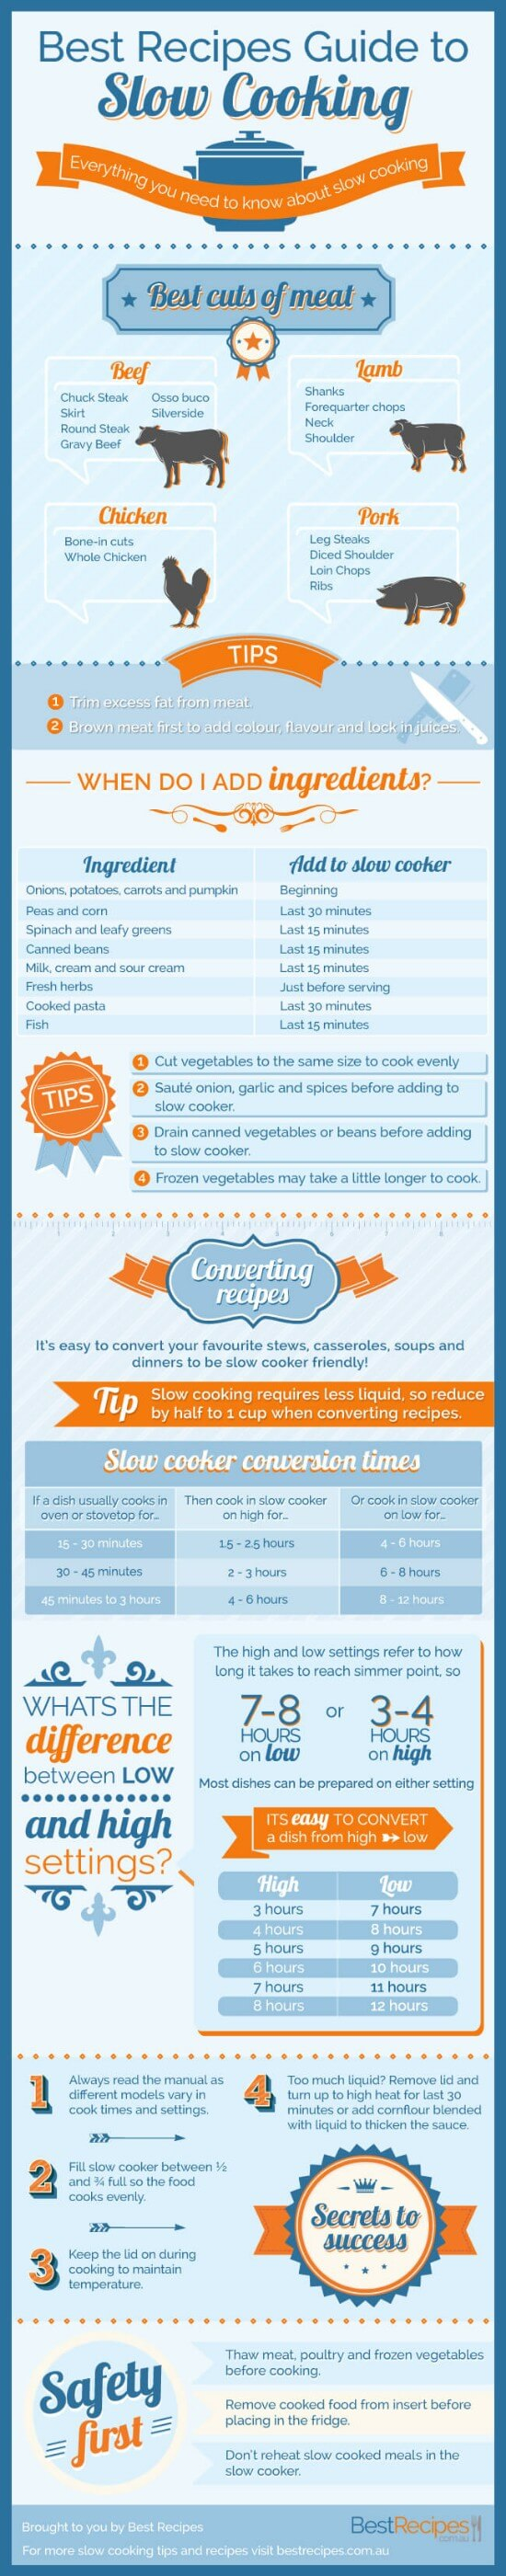 slow cooking guidelines